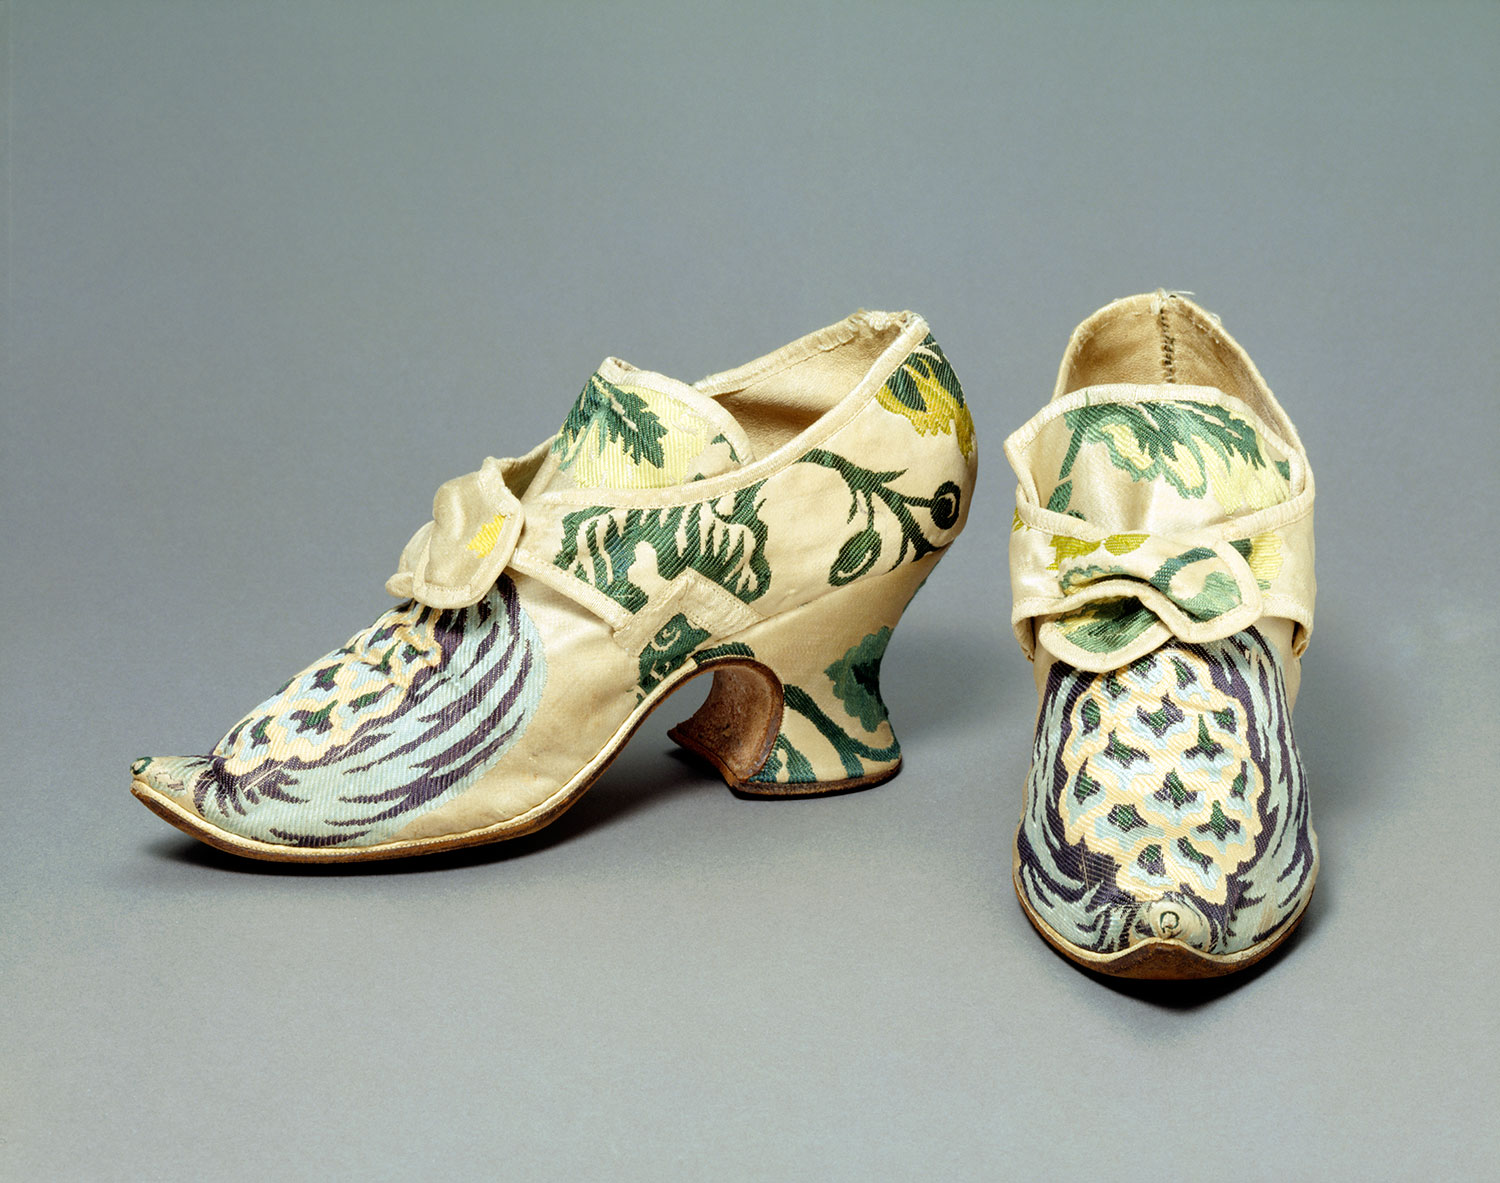 Pair of indoor shoes made with brocaded silk and leather, Spitalfields, c.1735.